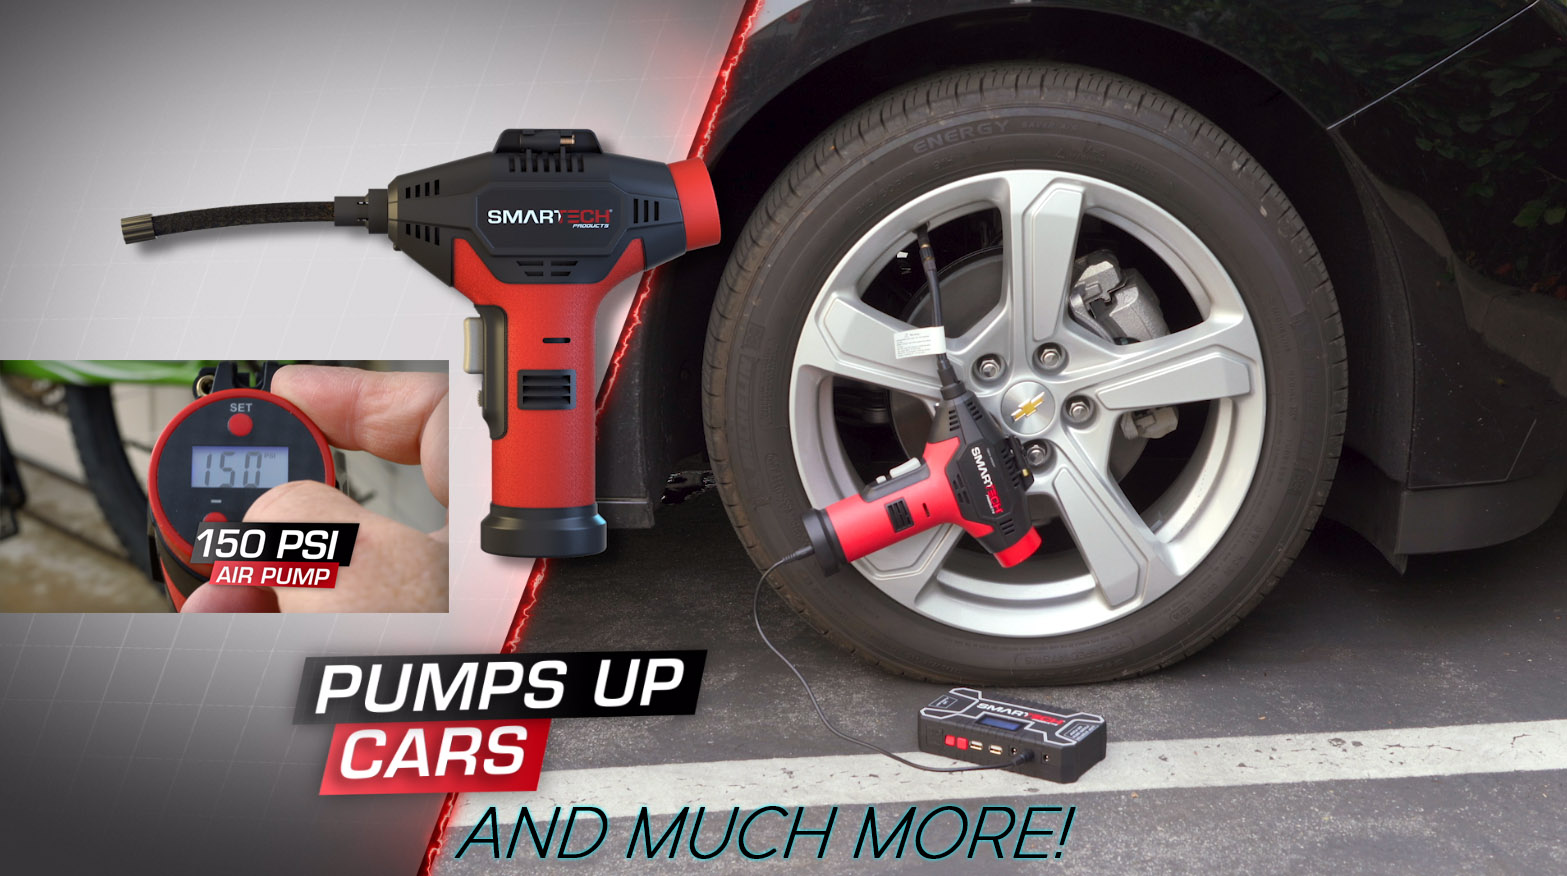 Pumps up tires and much more